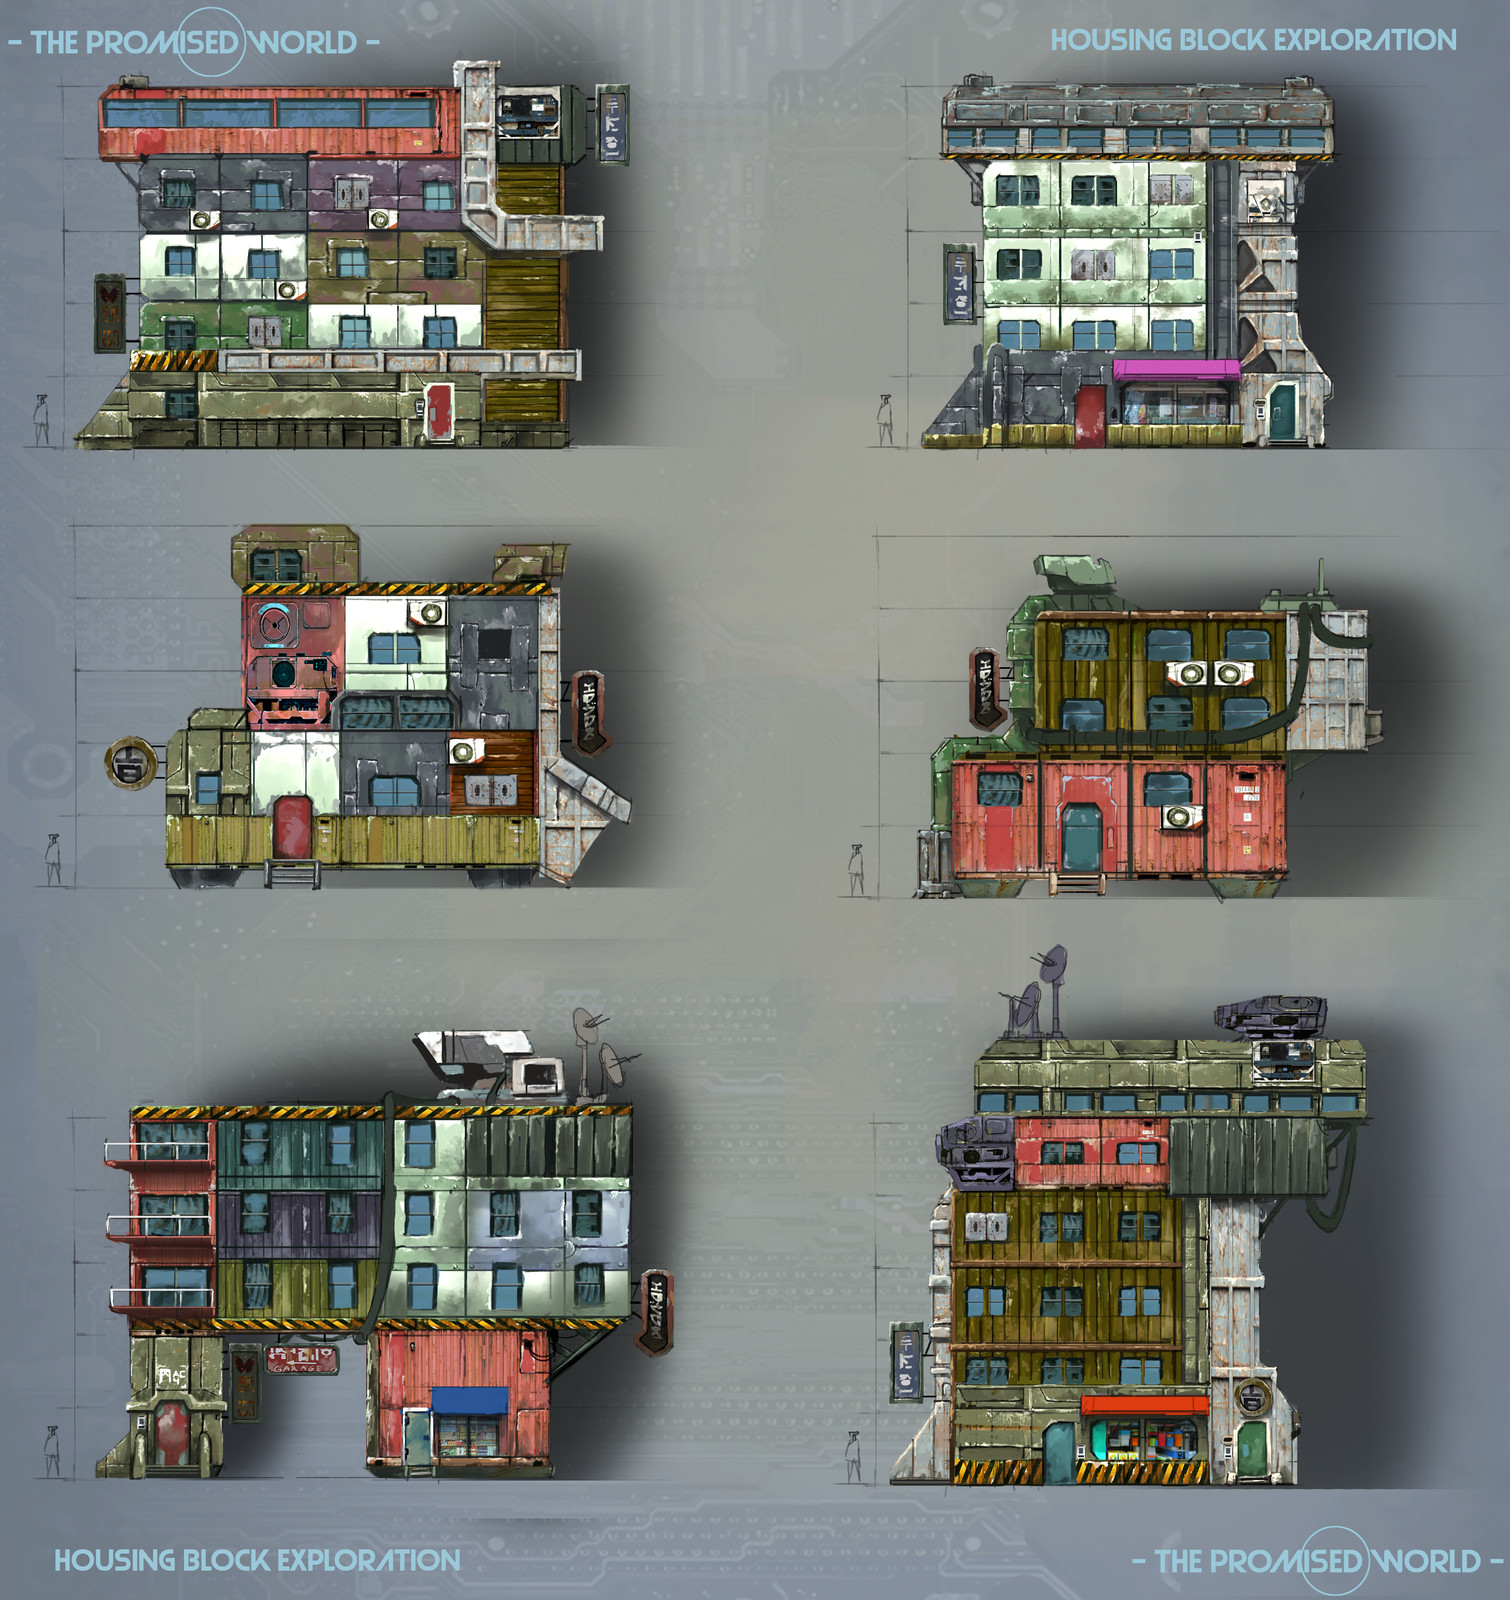 Colony housing block sketches